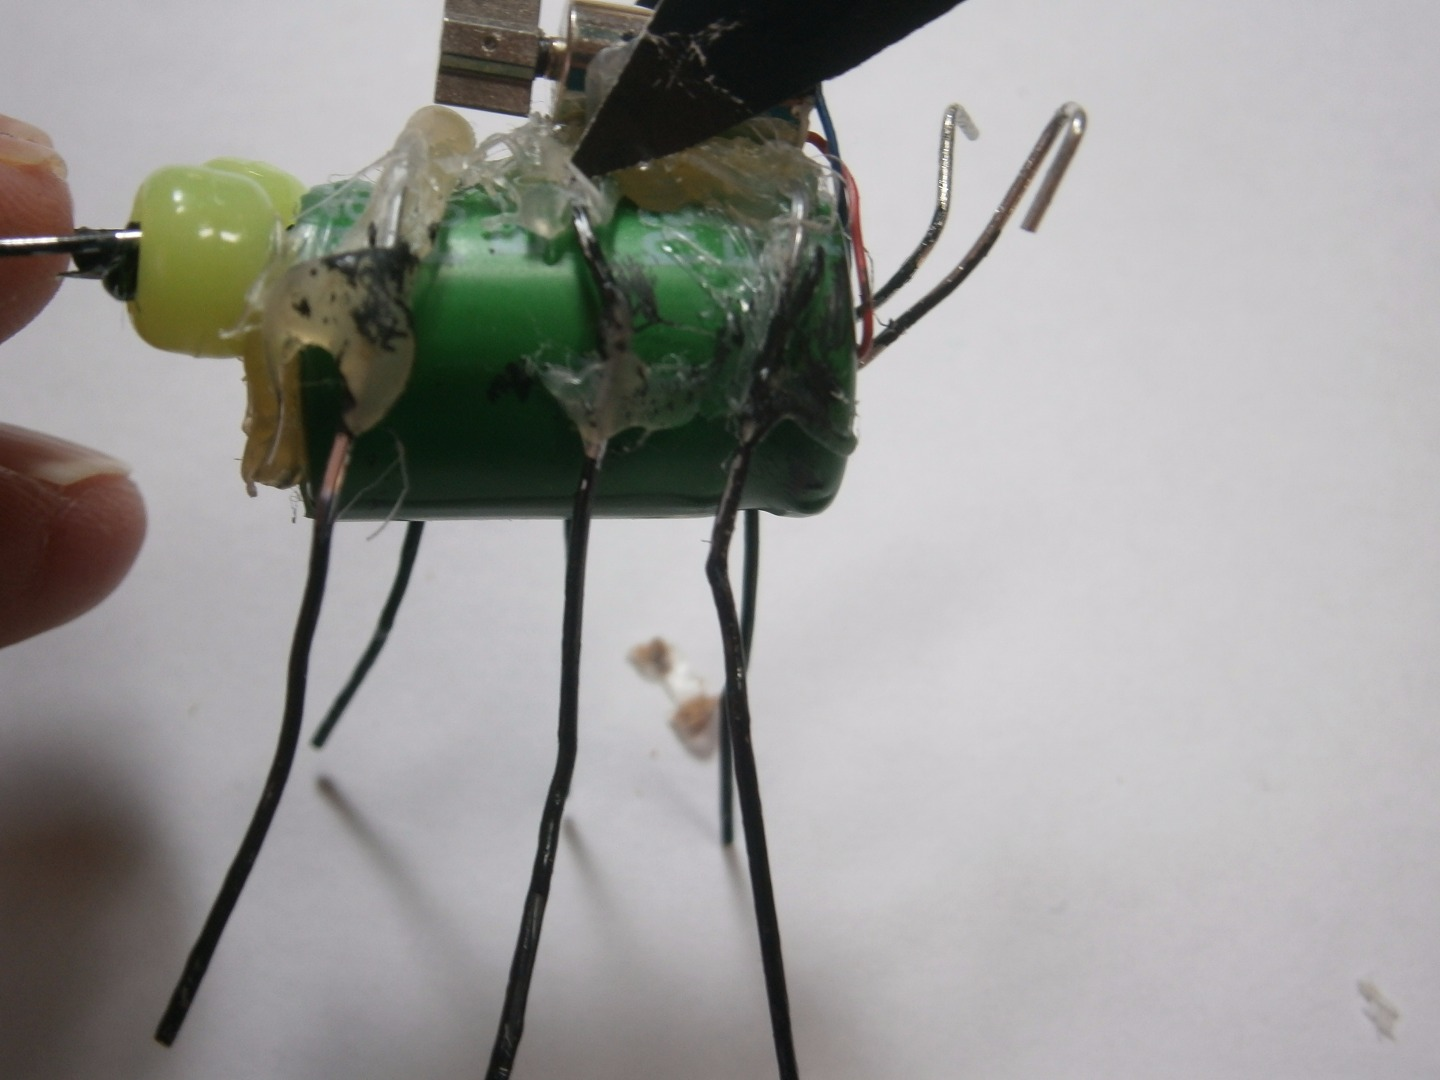 Picture of Use a Glue Gun to Glue the Legs to the Super Capacitor